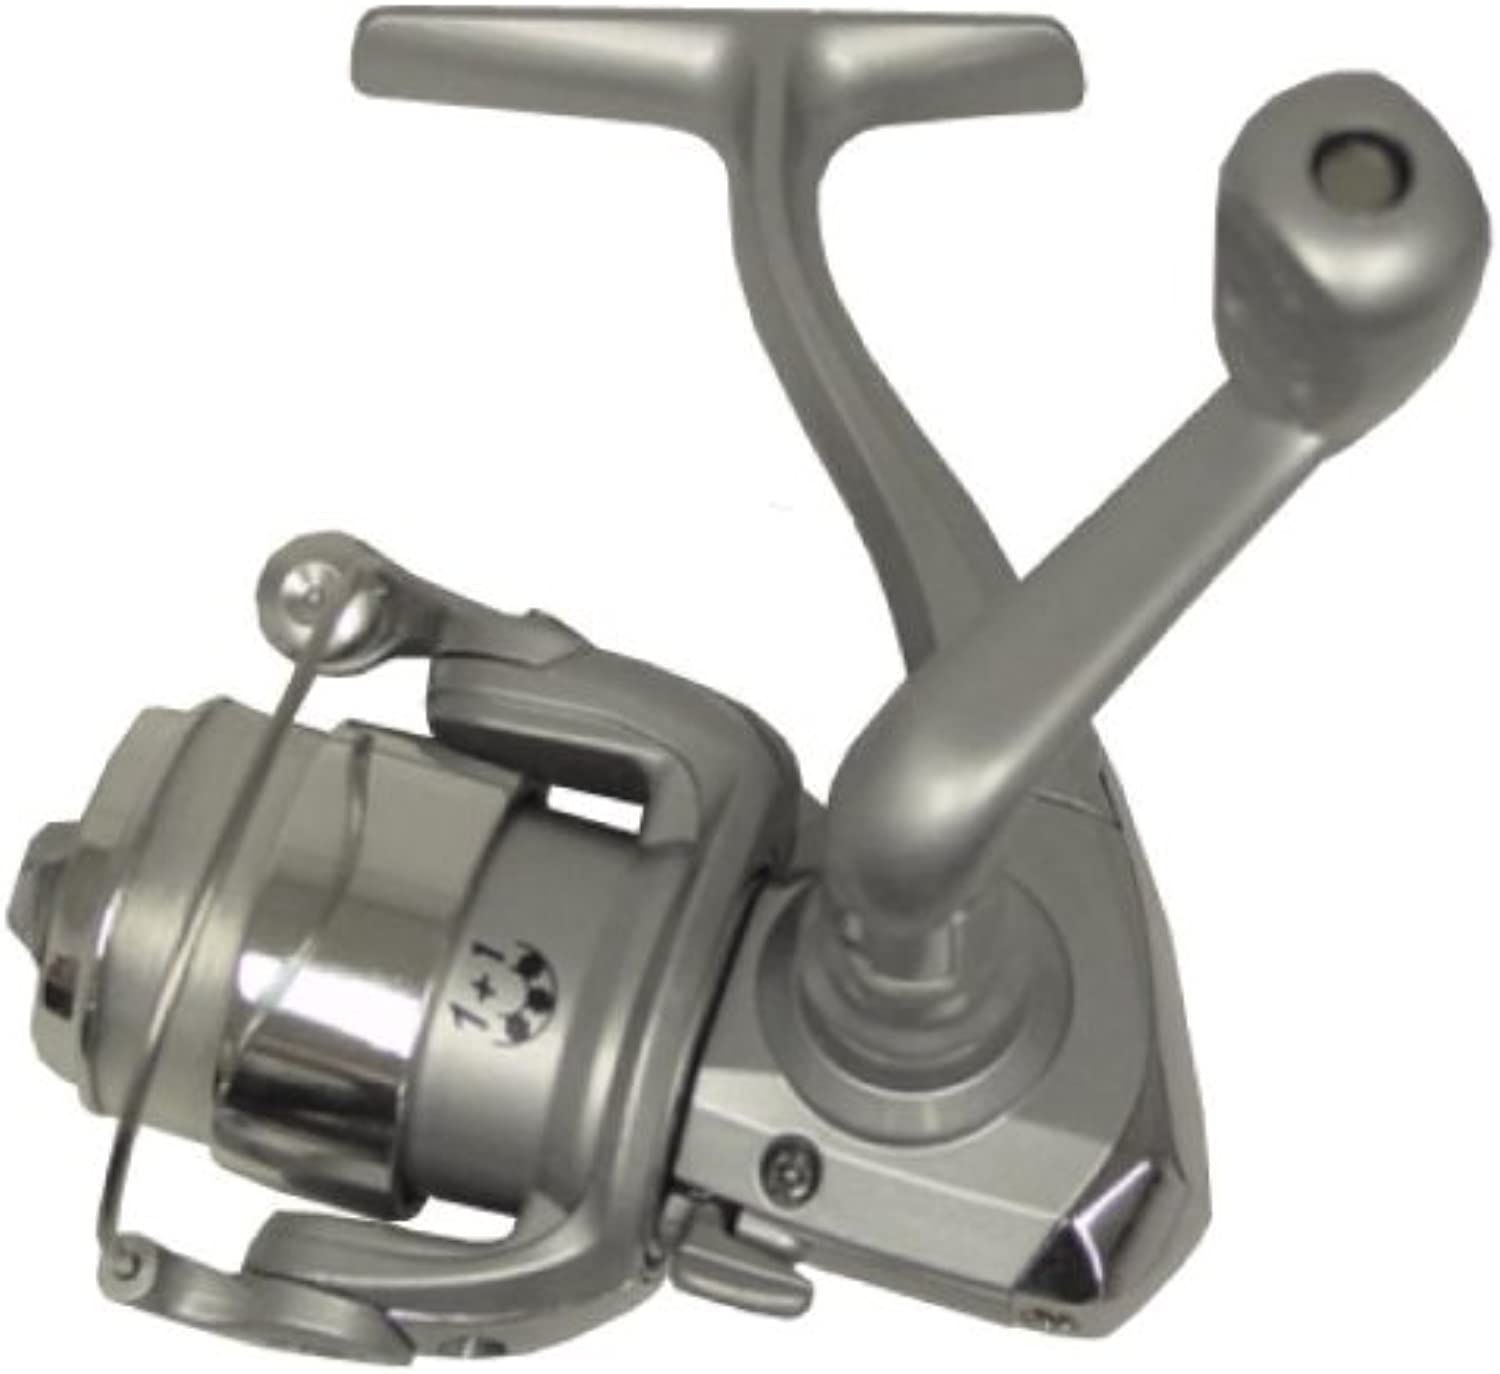 (ACR102C) - H.T. Enterprises Accucast Ultra-light Spinning Reel